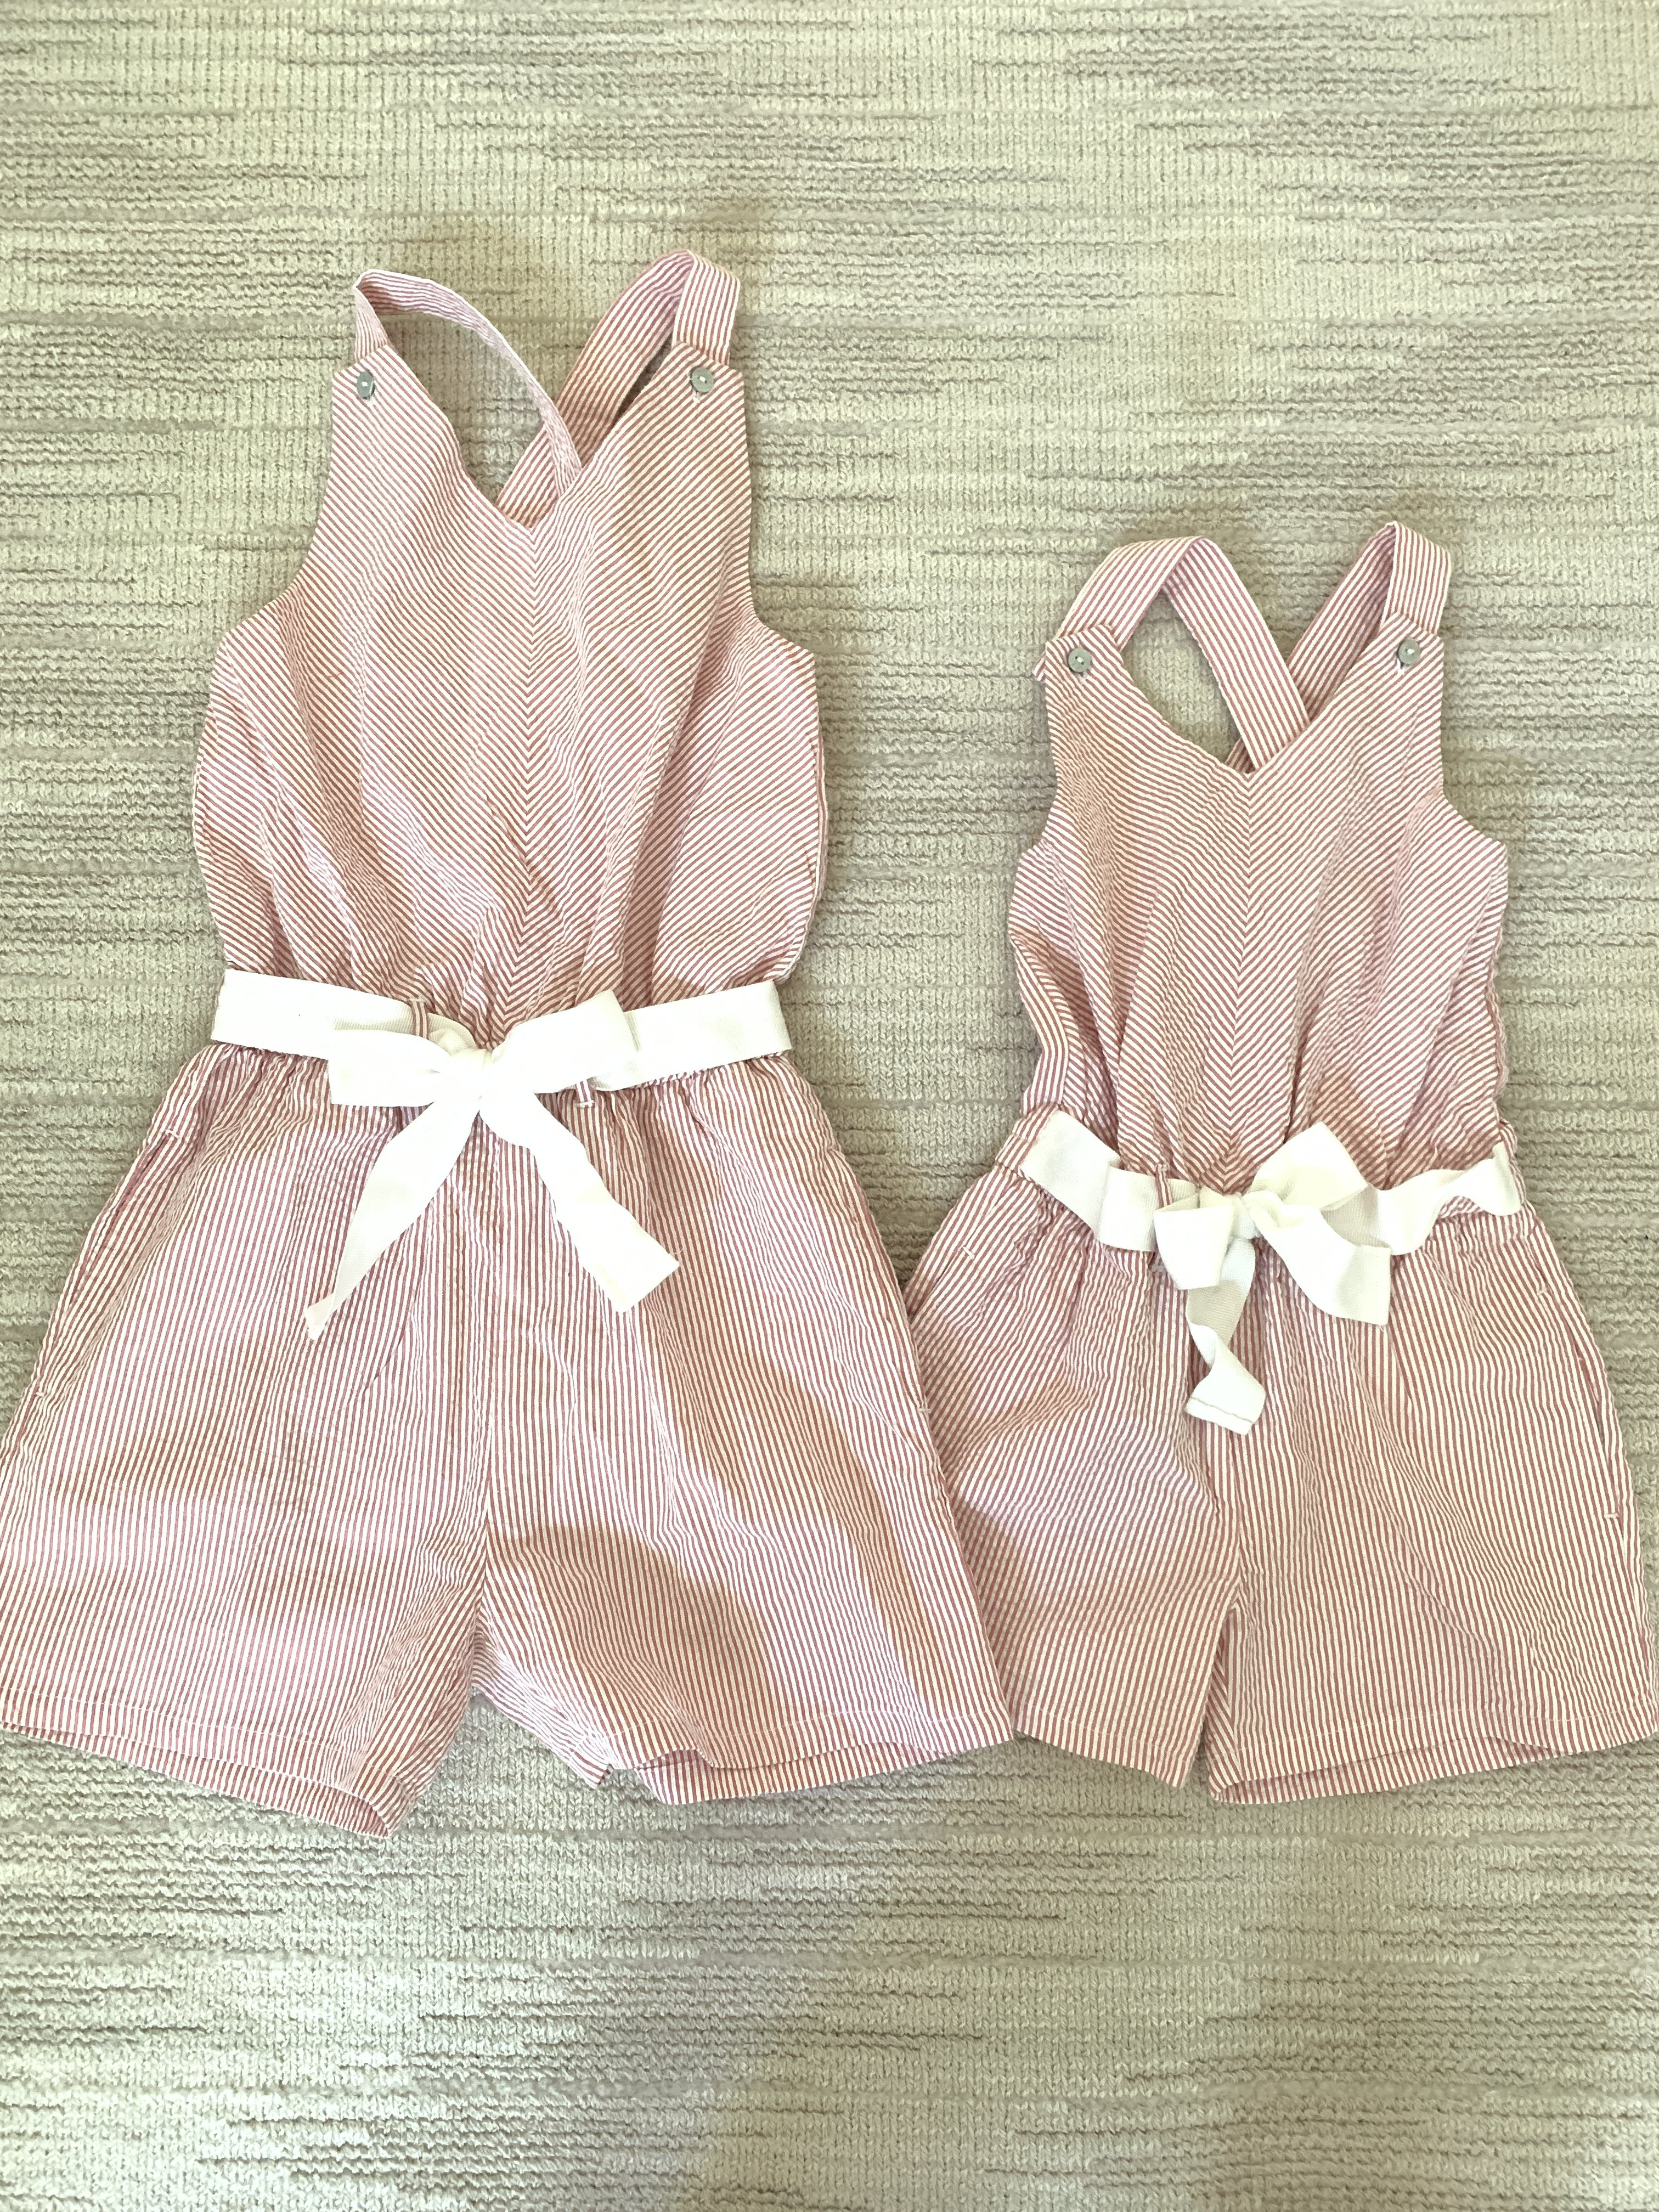 Hope and Henry girl's rompers | Style Your Senses